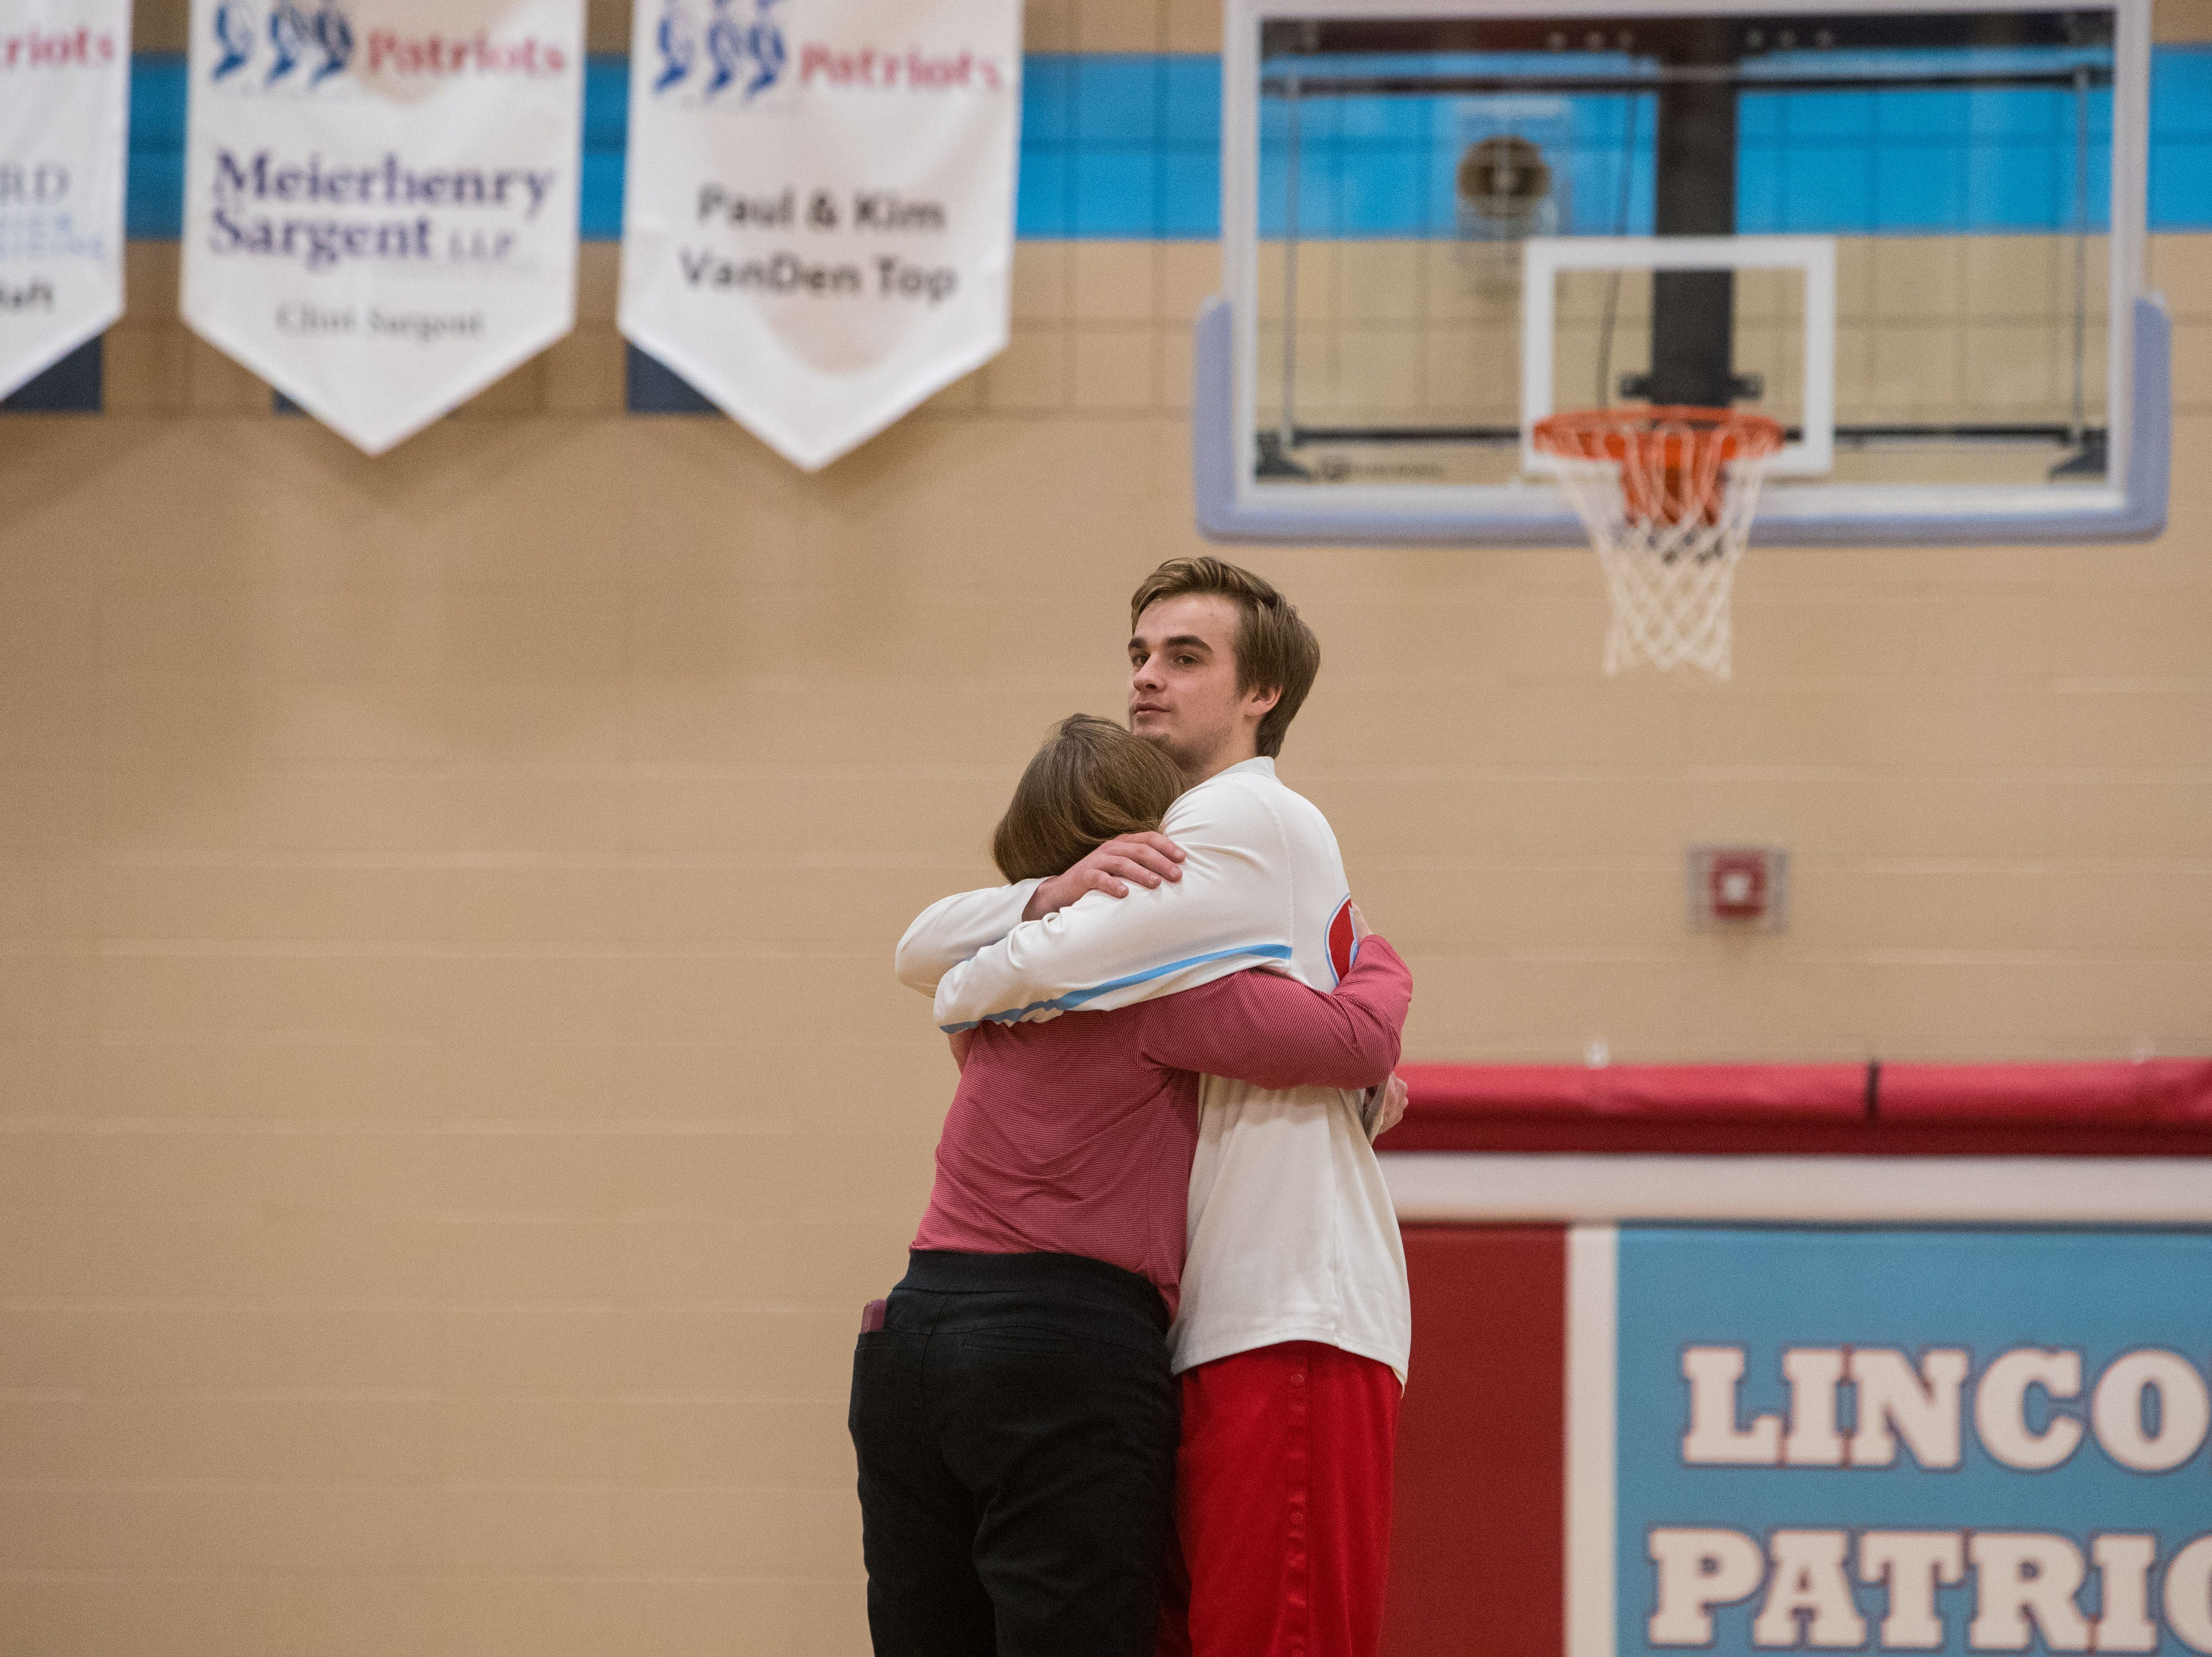 Lincoln's Nolan Ransom (21) hugs his mom, Andrea Ransom, before the game against Brandon Valley in Sioux Falls, S.D., Tuesday, Feb. 5, 2019.